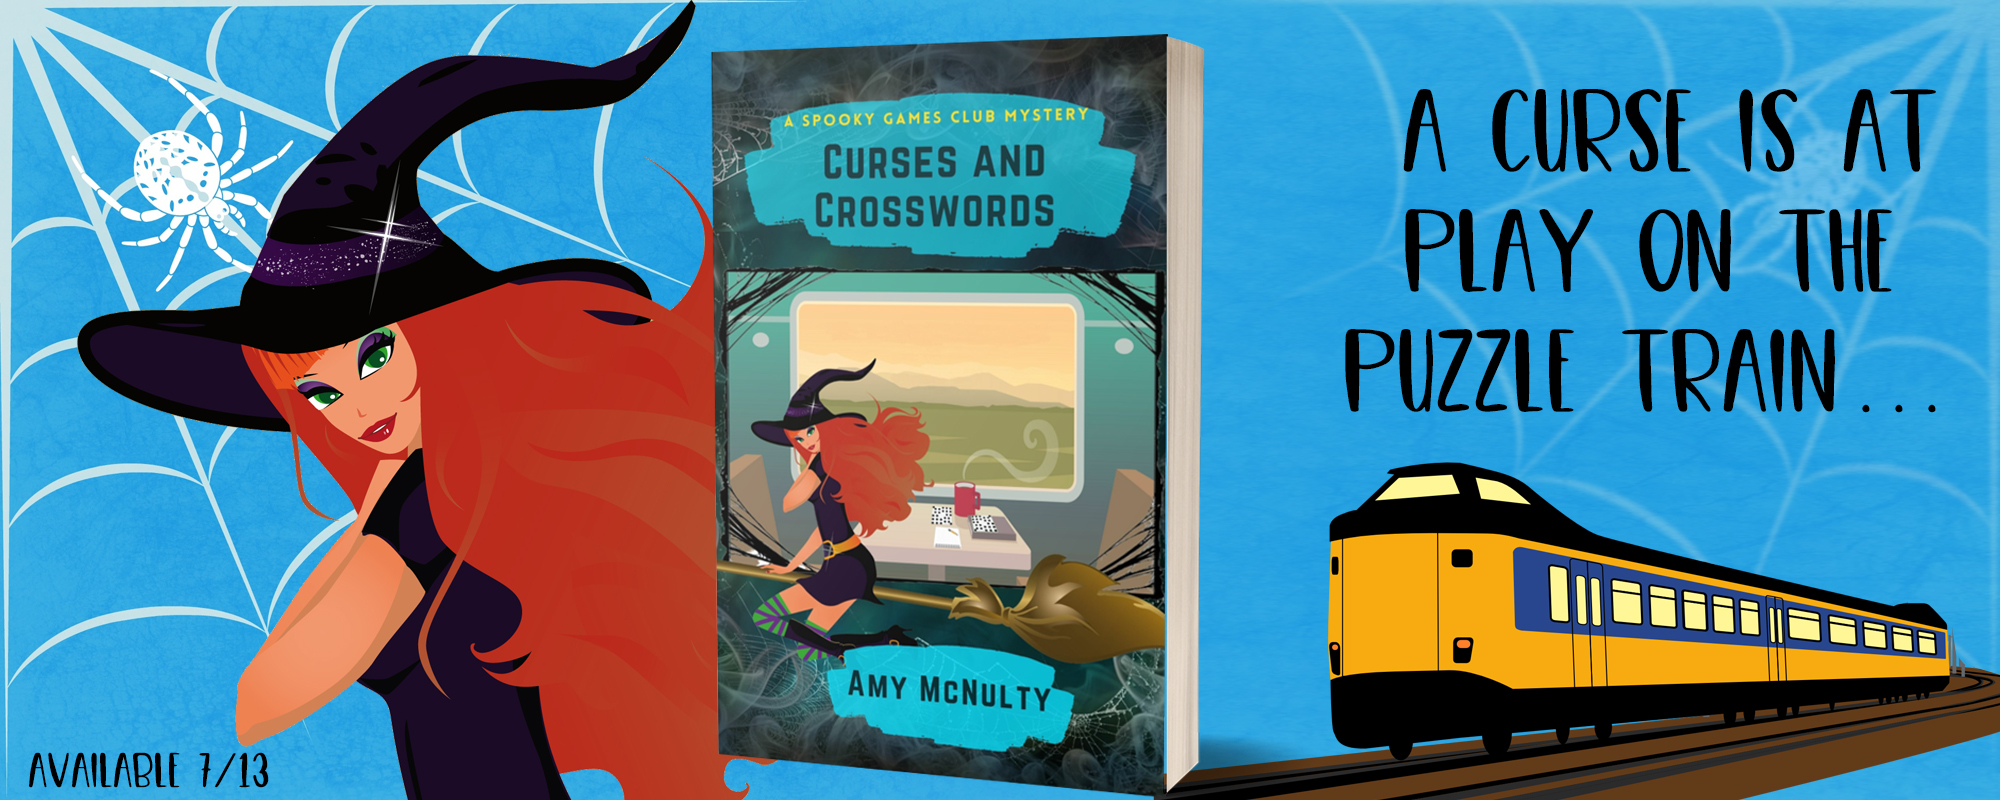 Curses and Crosswords by Amy McNulty, coming soon